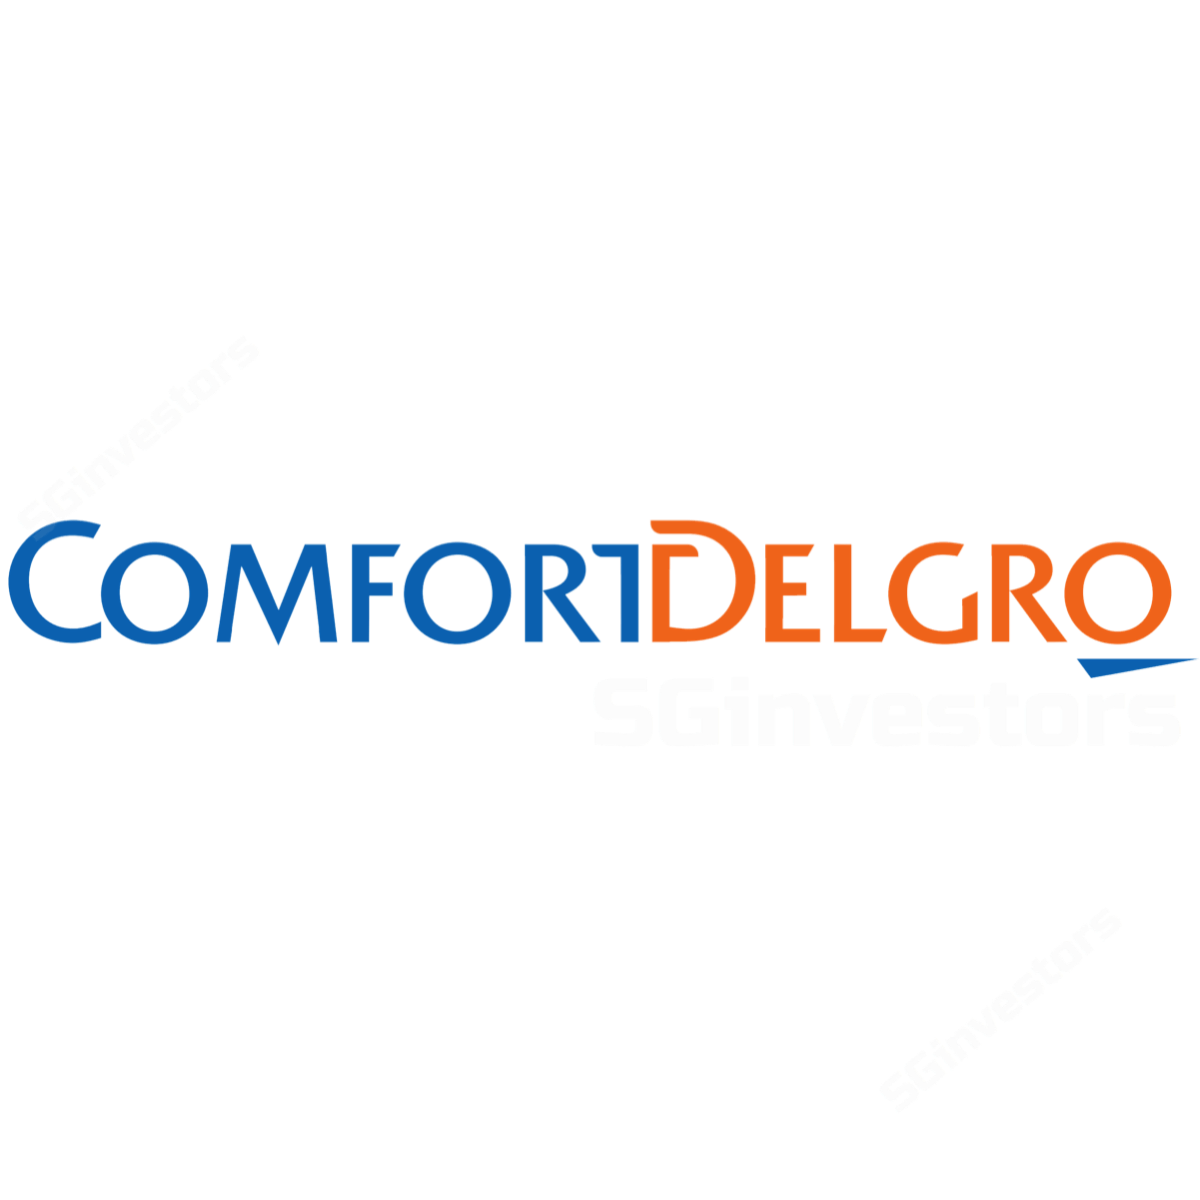 ComfortDelGro Corporation (CD SP) - UOB Kay Hian 2018-01-18: Negatives Mostly Priced In